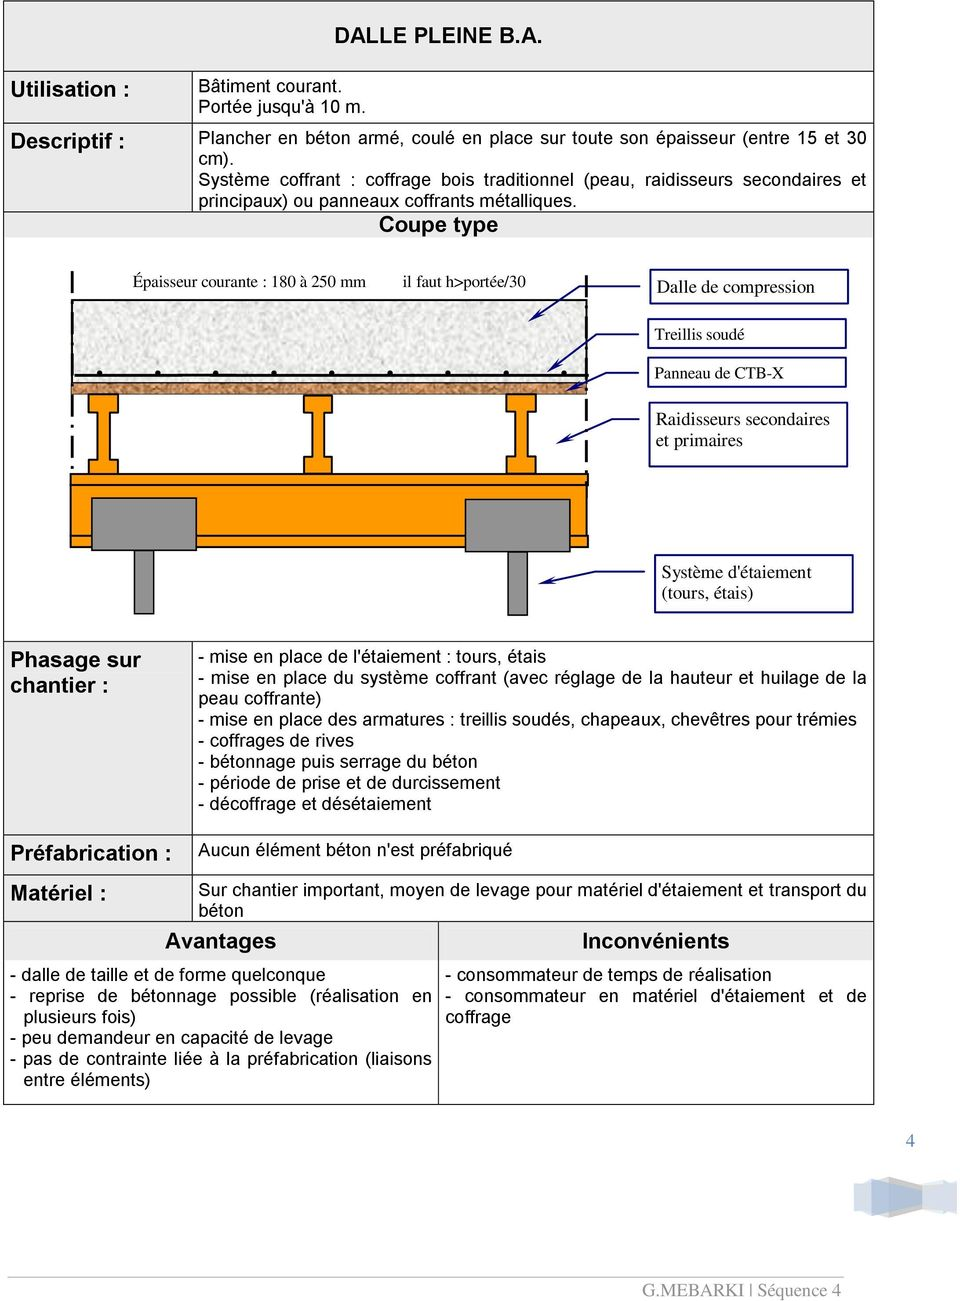 Les differents planchers pdf - Dalle de compression ...